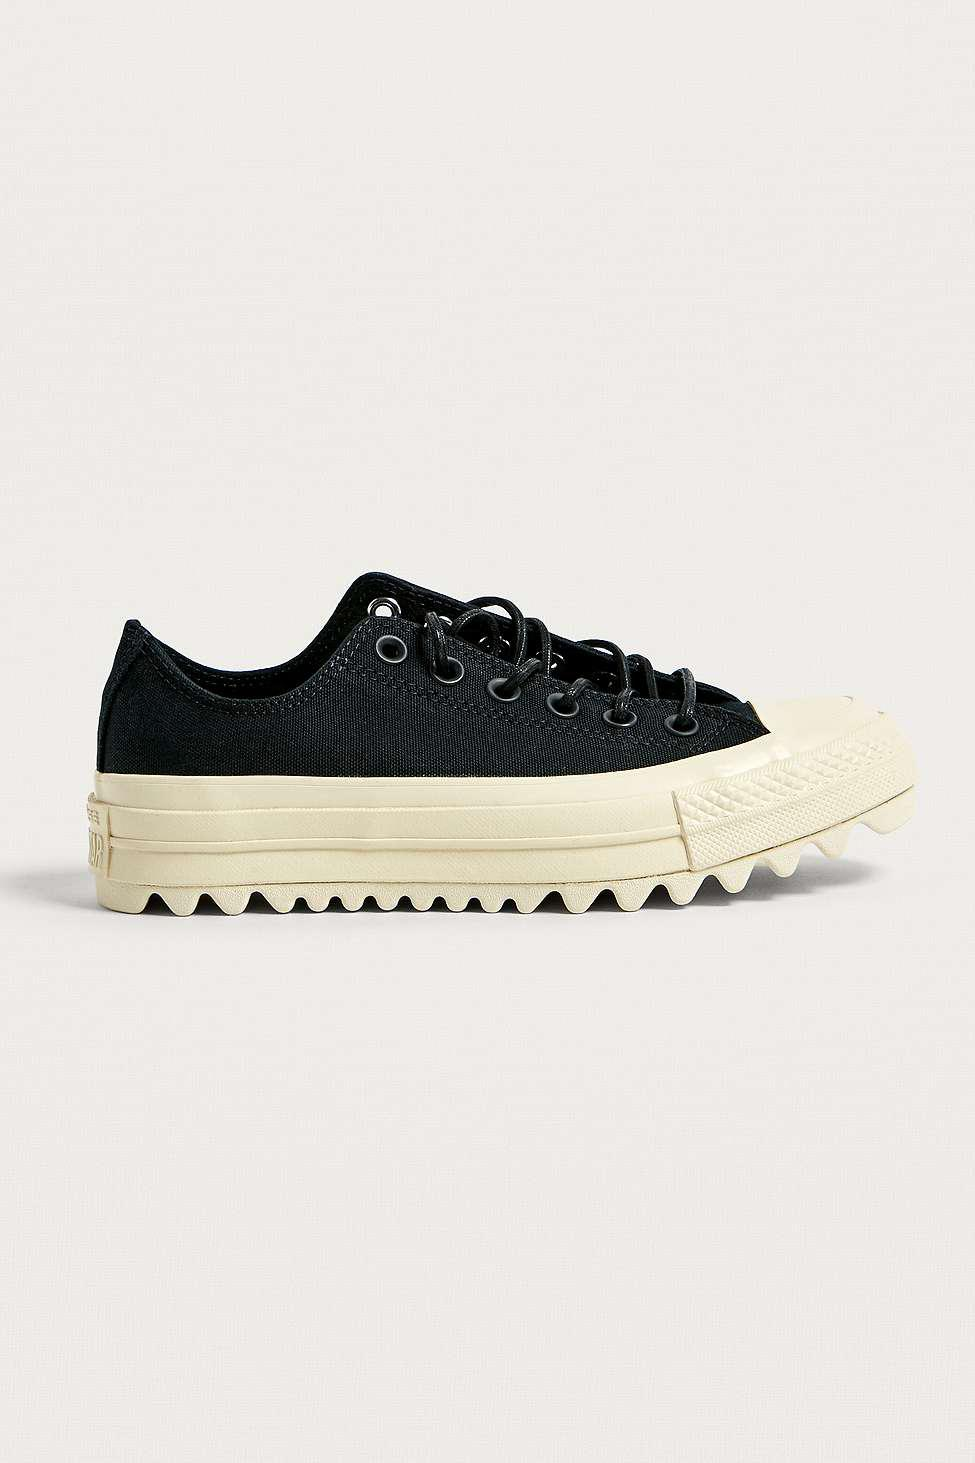 Converse. Women s Chuck Taylor All Star Lift Ripple Black Low Top Trainers 670c1eee5